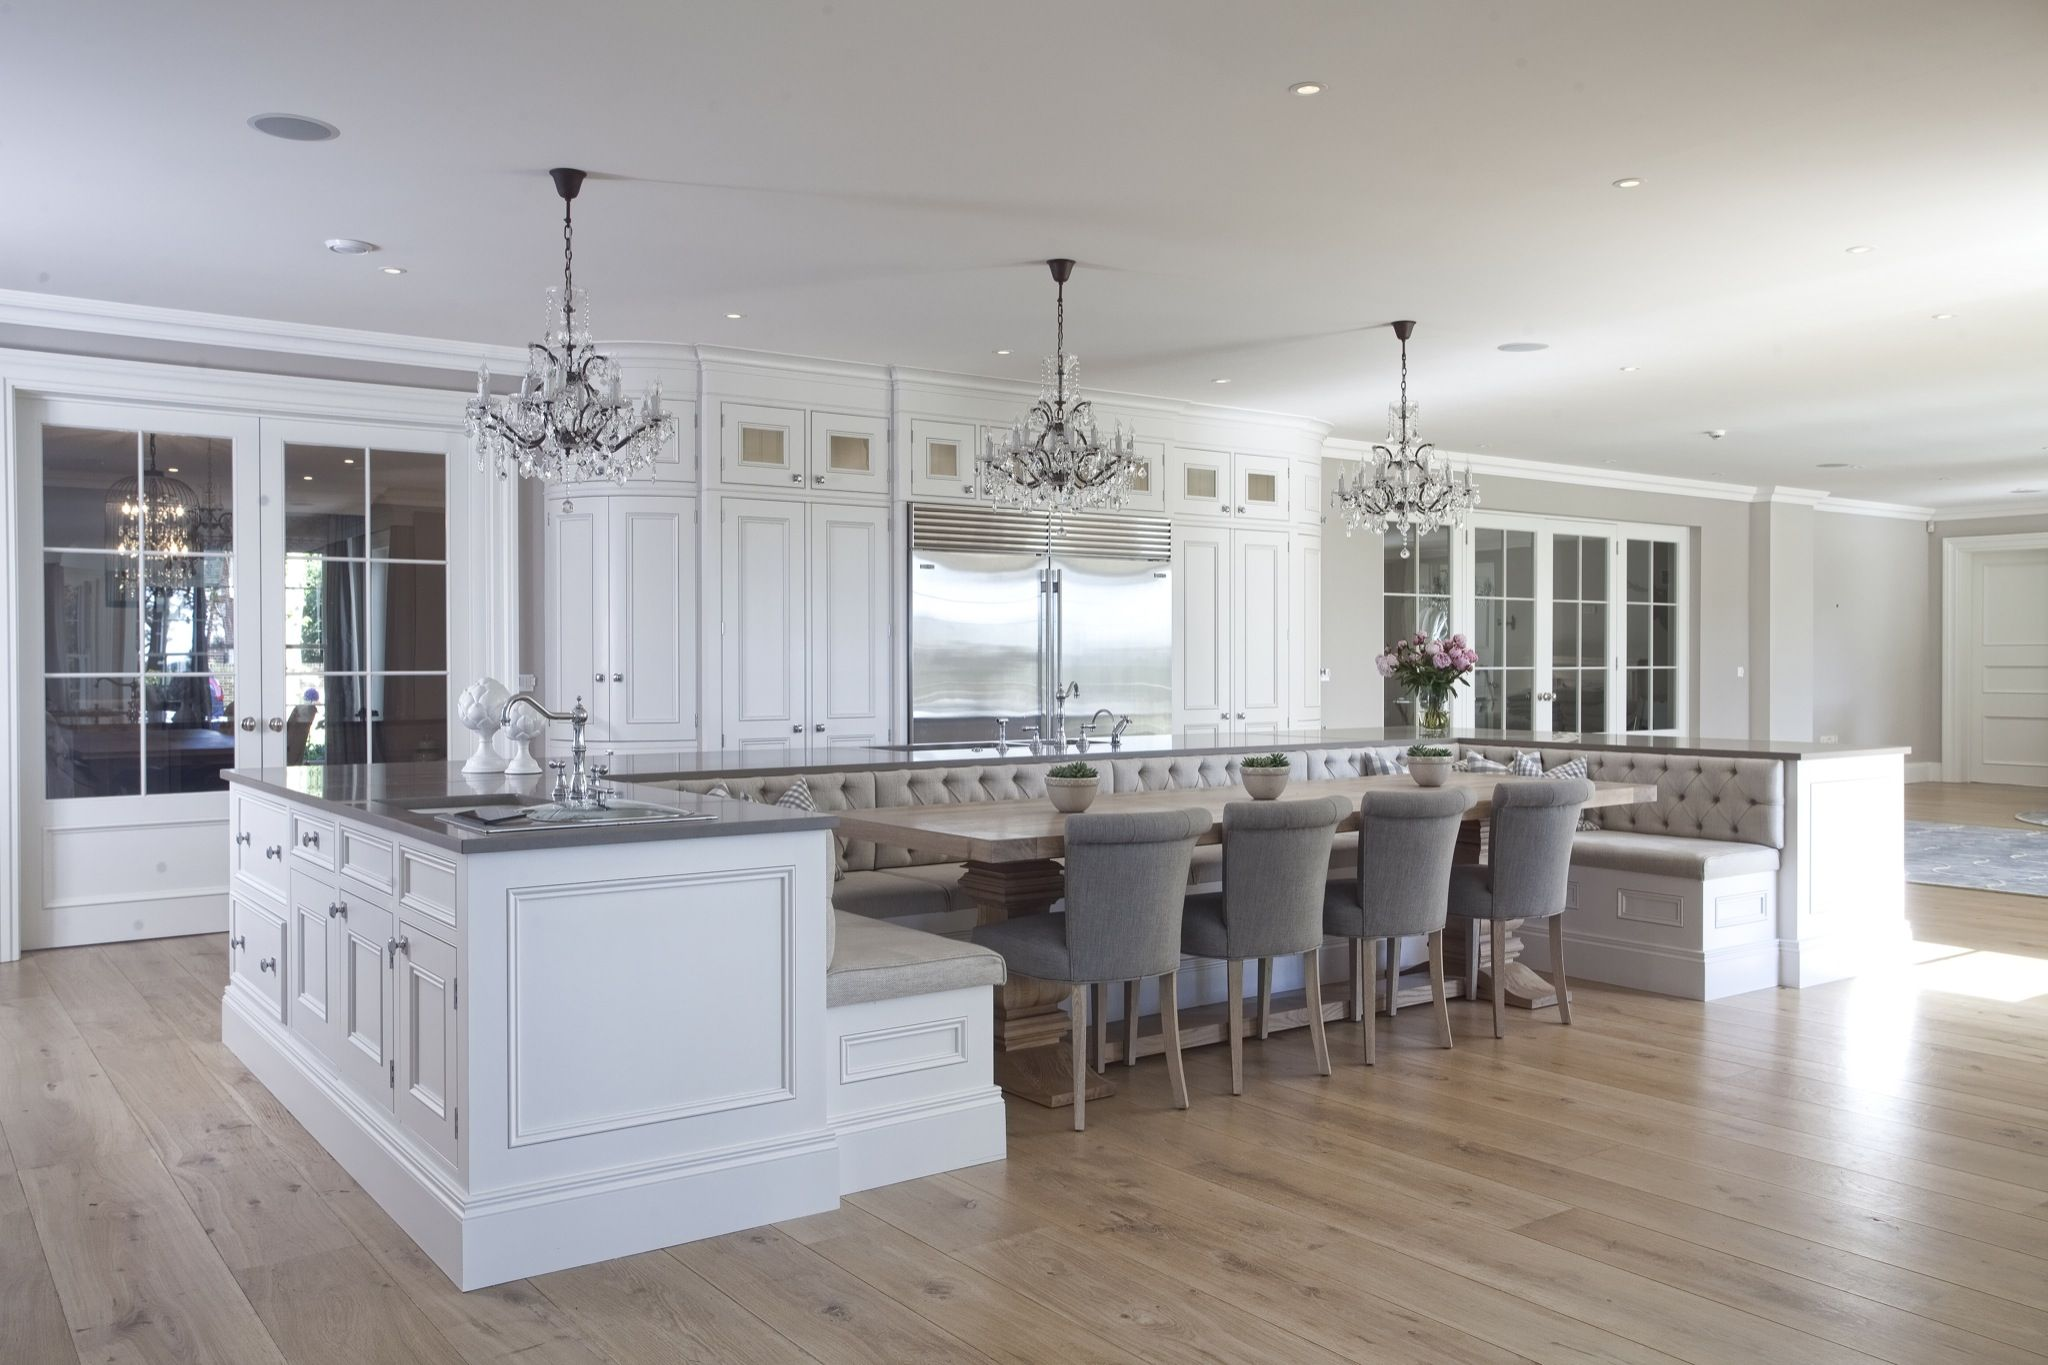 Custom Kitchen Islands With Seating 101 Custom Kitchen Designs With Islands - Page 7 Of 11